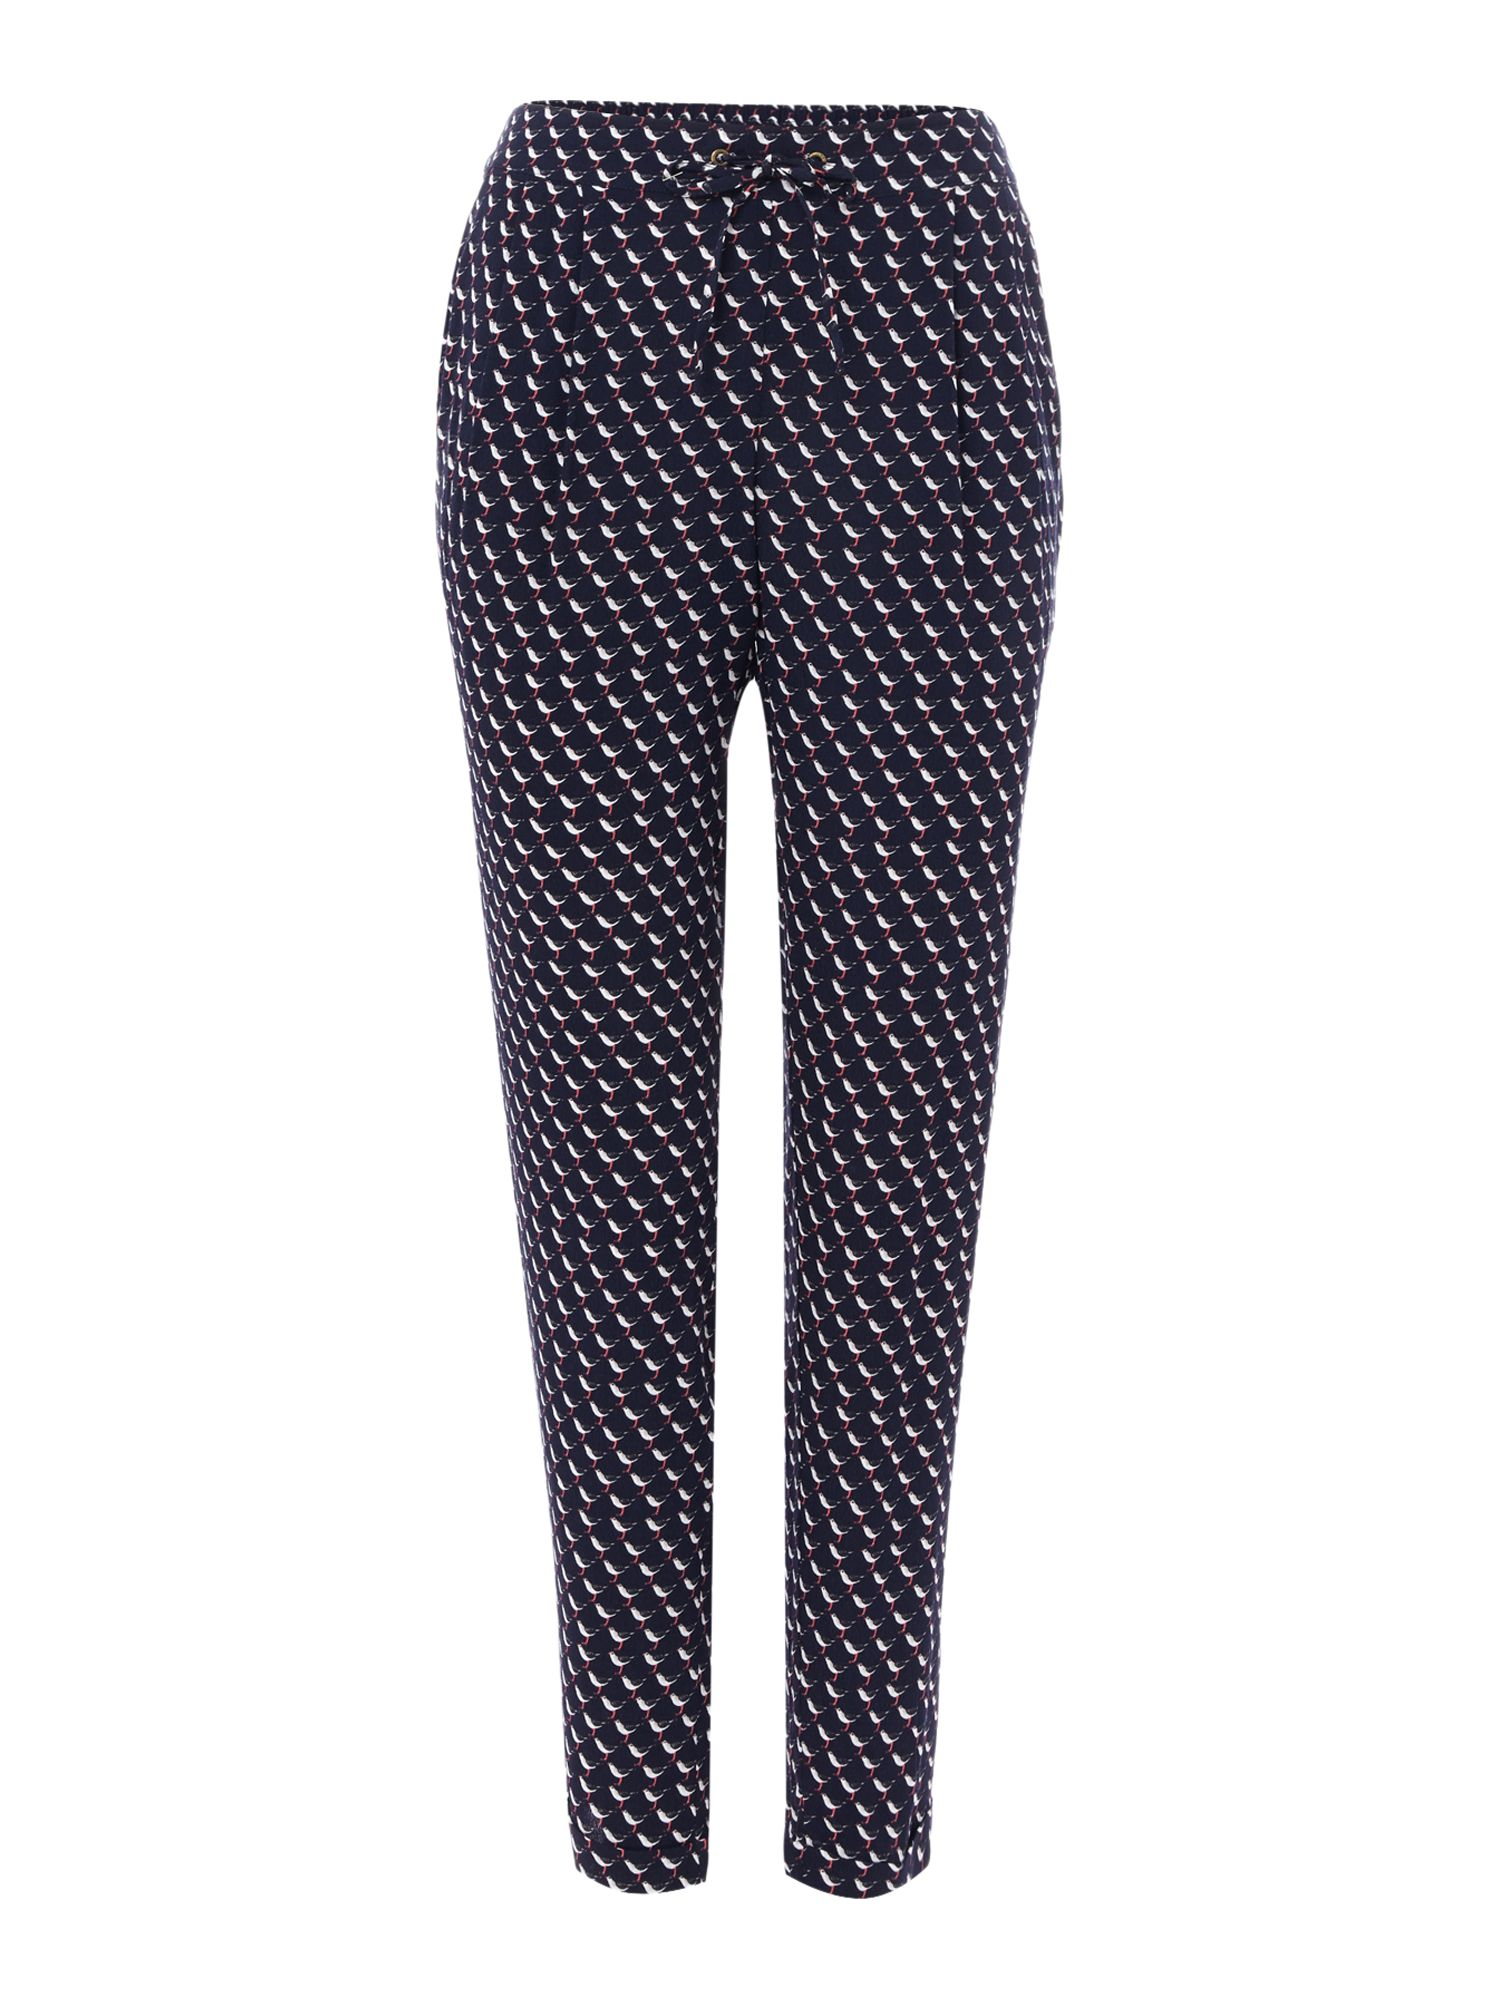 Joules Woven printed trouser, Blue Multi